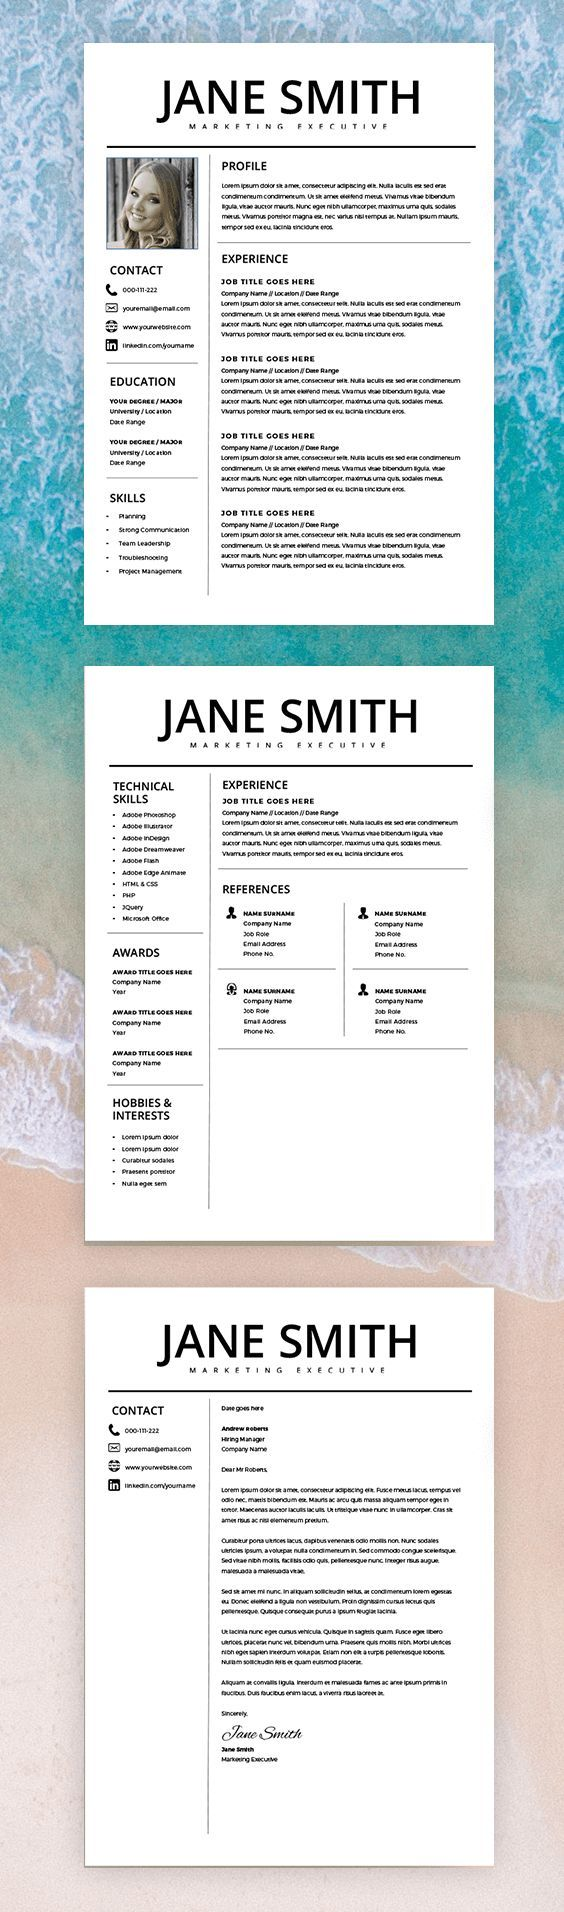 Professional Resume Template   MS Word Compatible   Best CV Template +  Cover Letter   Mac / PC   Sample   Instant Download